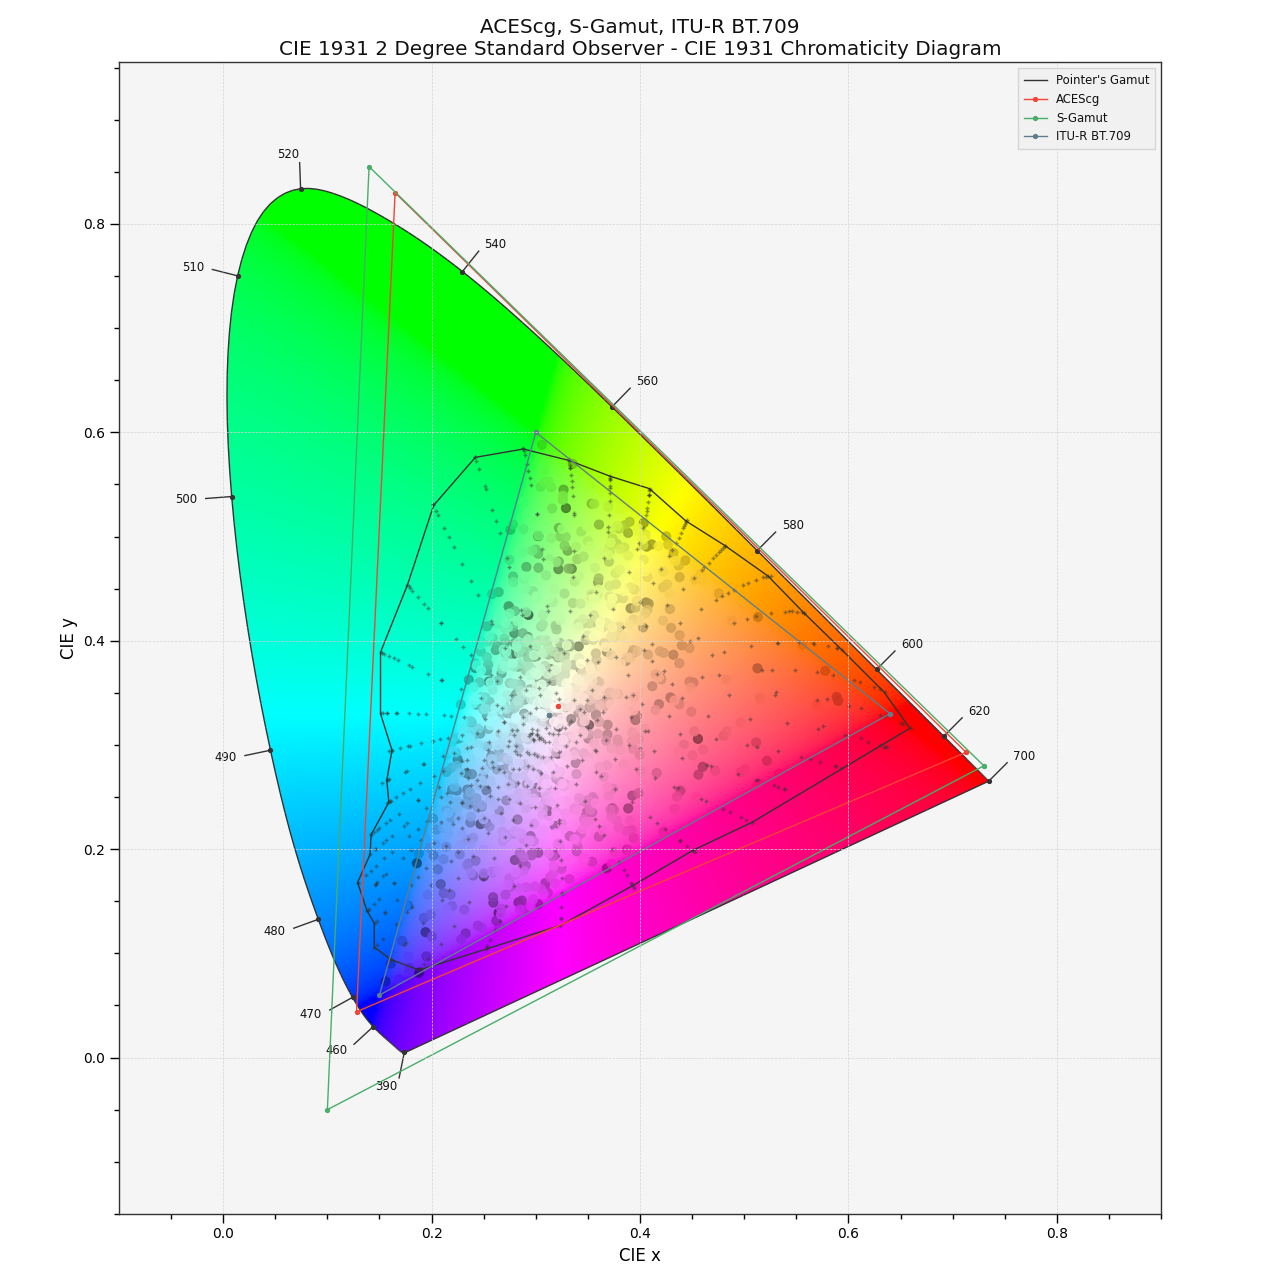 https://colour.readthedocs.io/en/develop/_static/Examples_Plotting_Chromaticities_CIE_1931_Chromaticity_Diagram.png